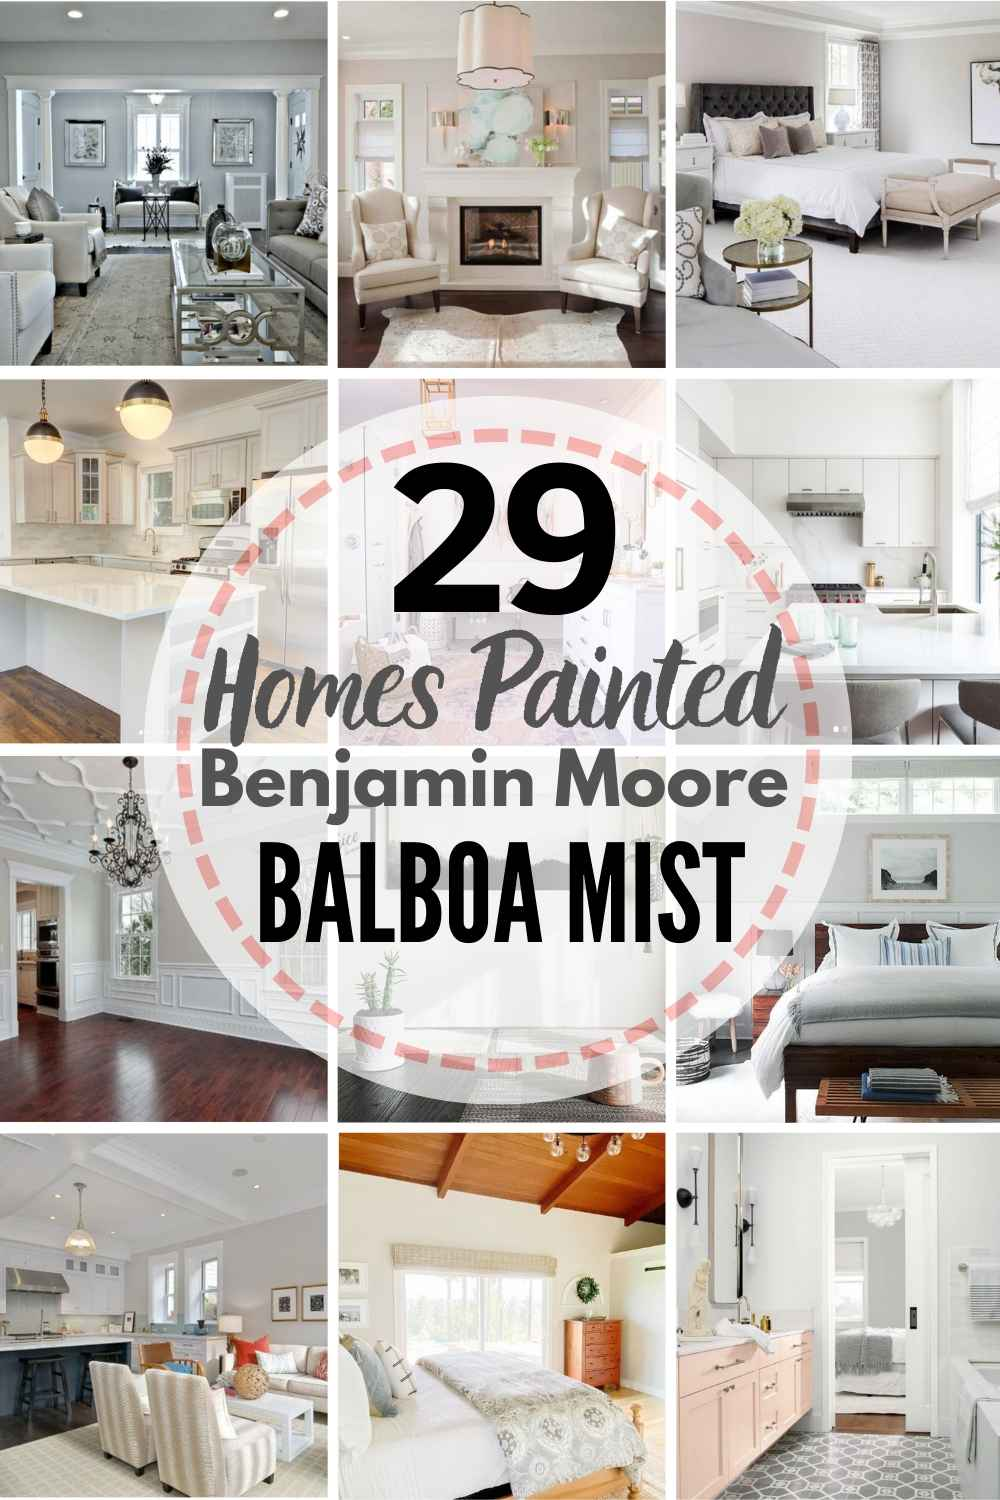 grid of homes painted Benjamin Moore Balboa Mist: See This Popular Greige In 29 REAL HOMES!